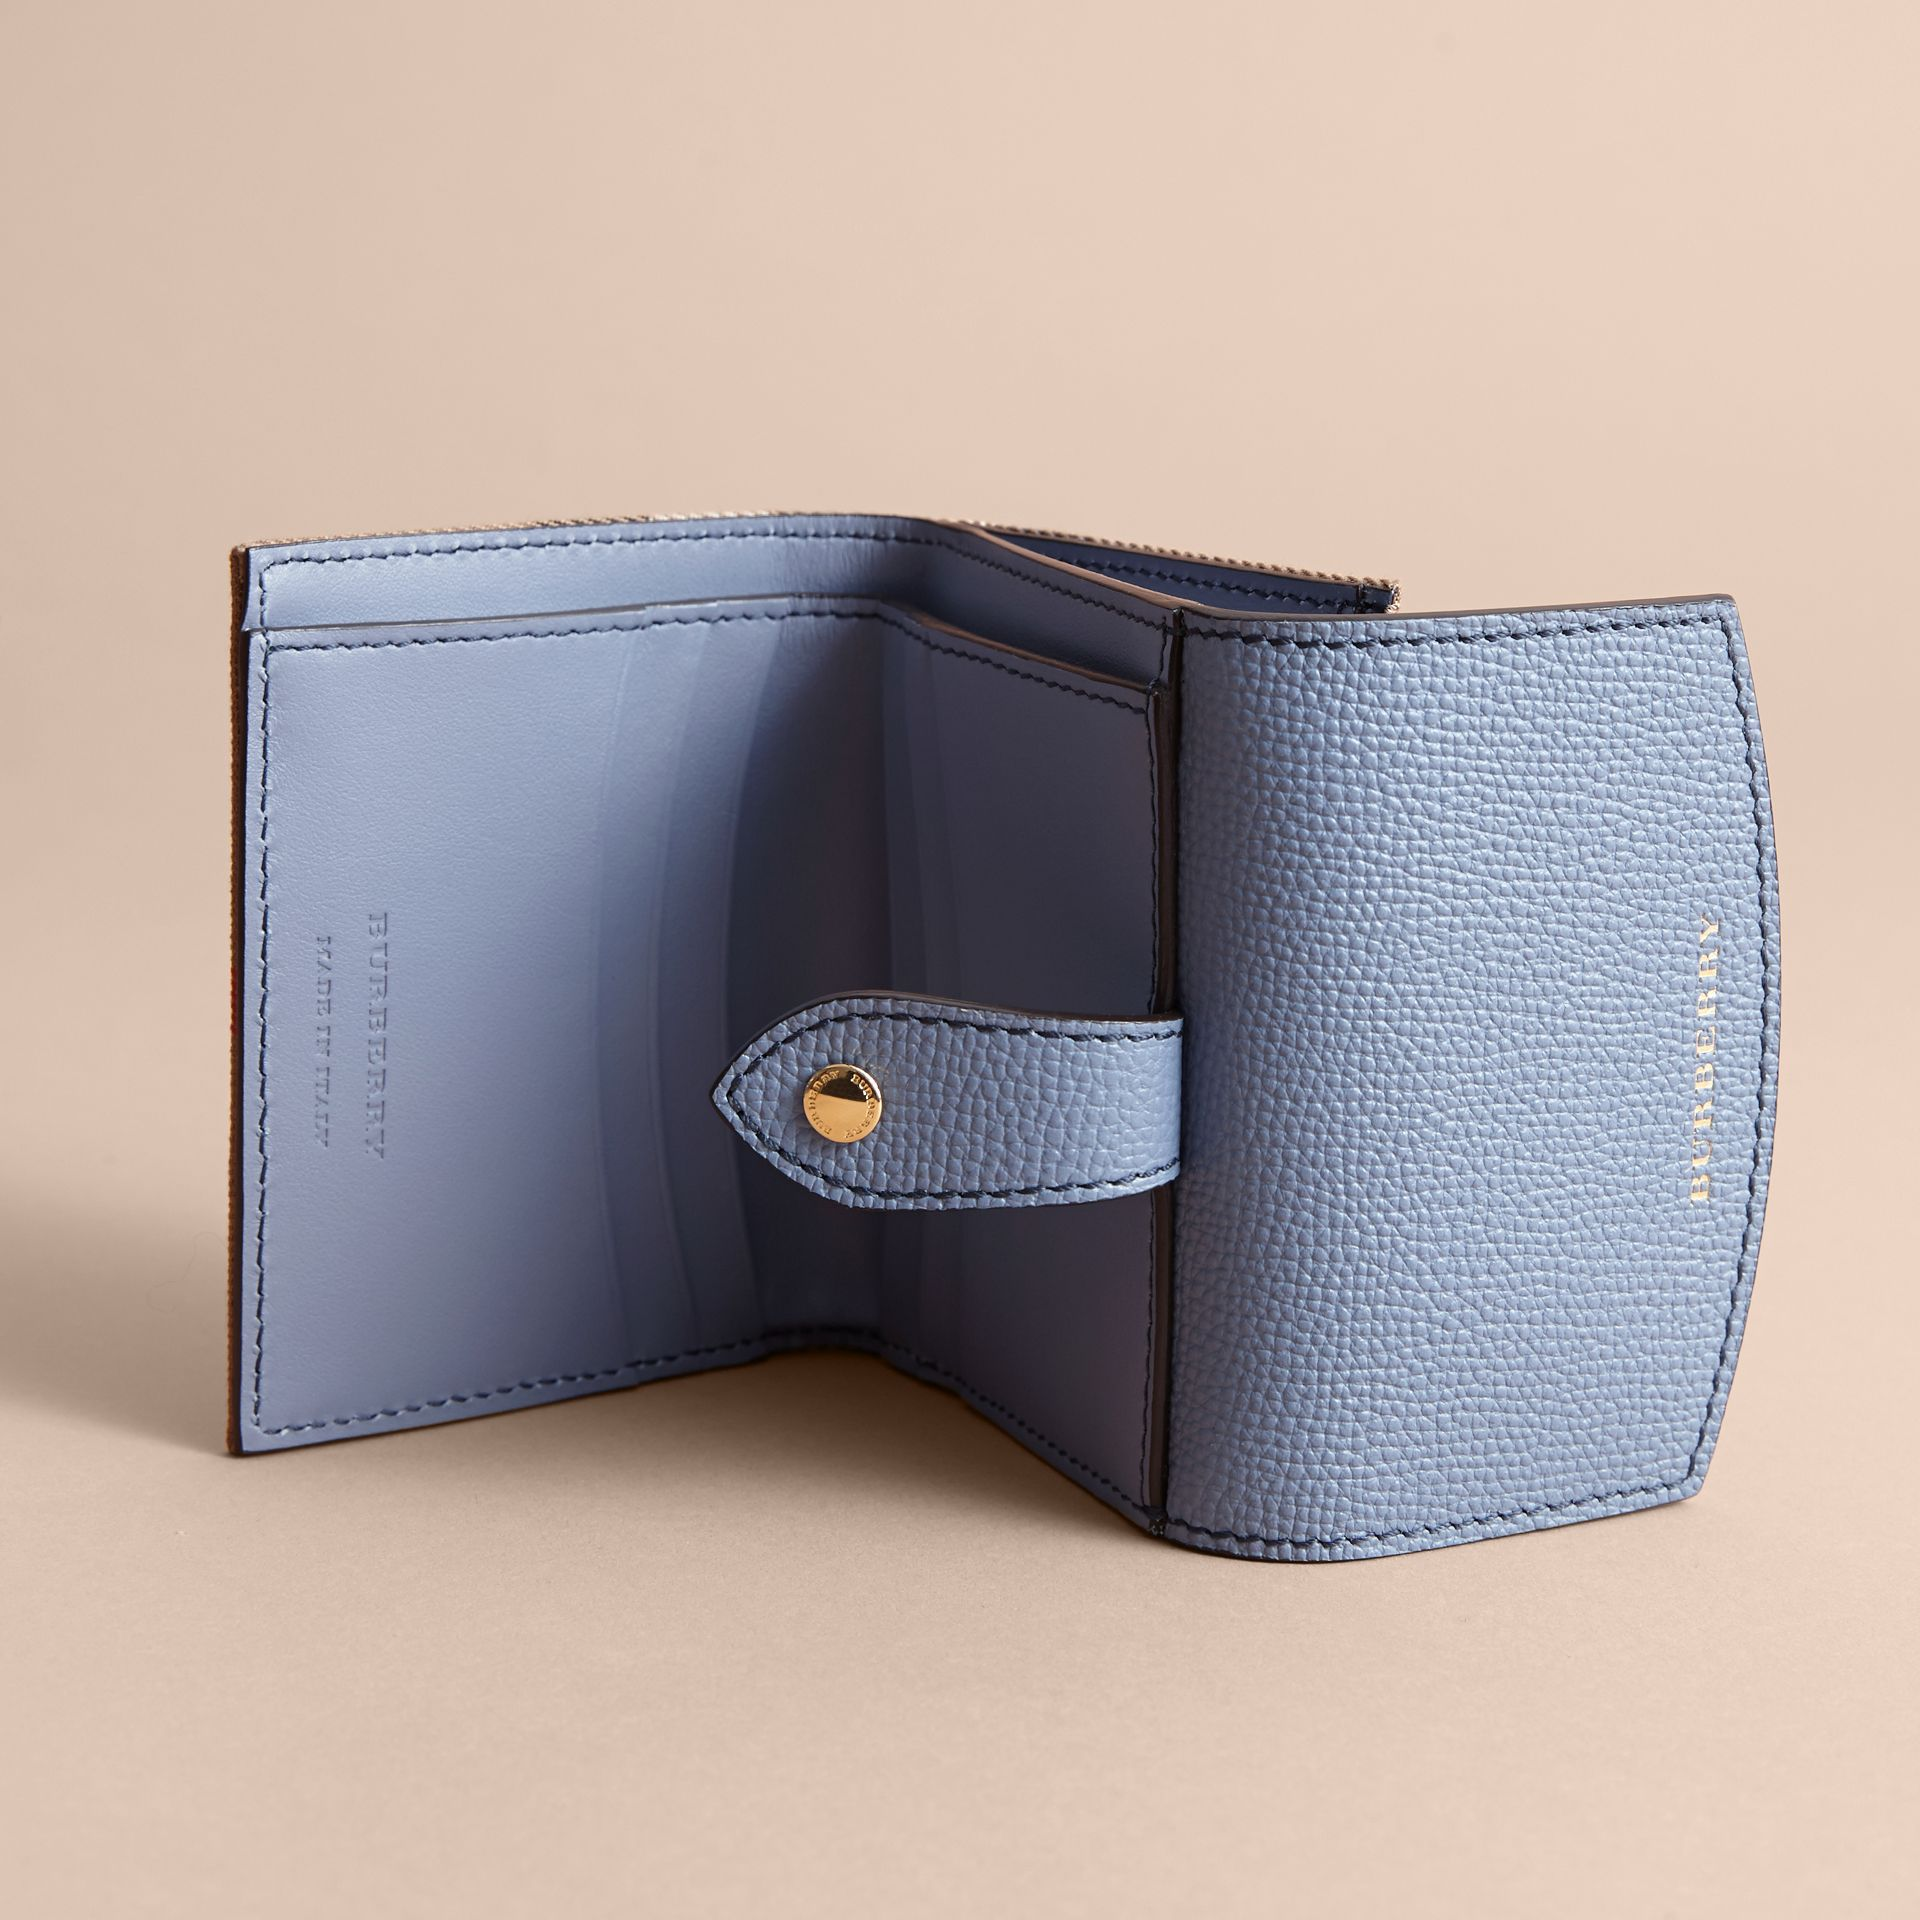 House Check and Leather Wallet in Slate Blue - Women | Burberry - gallery image 4